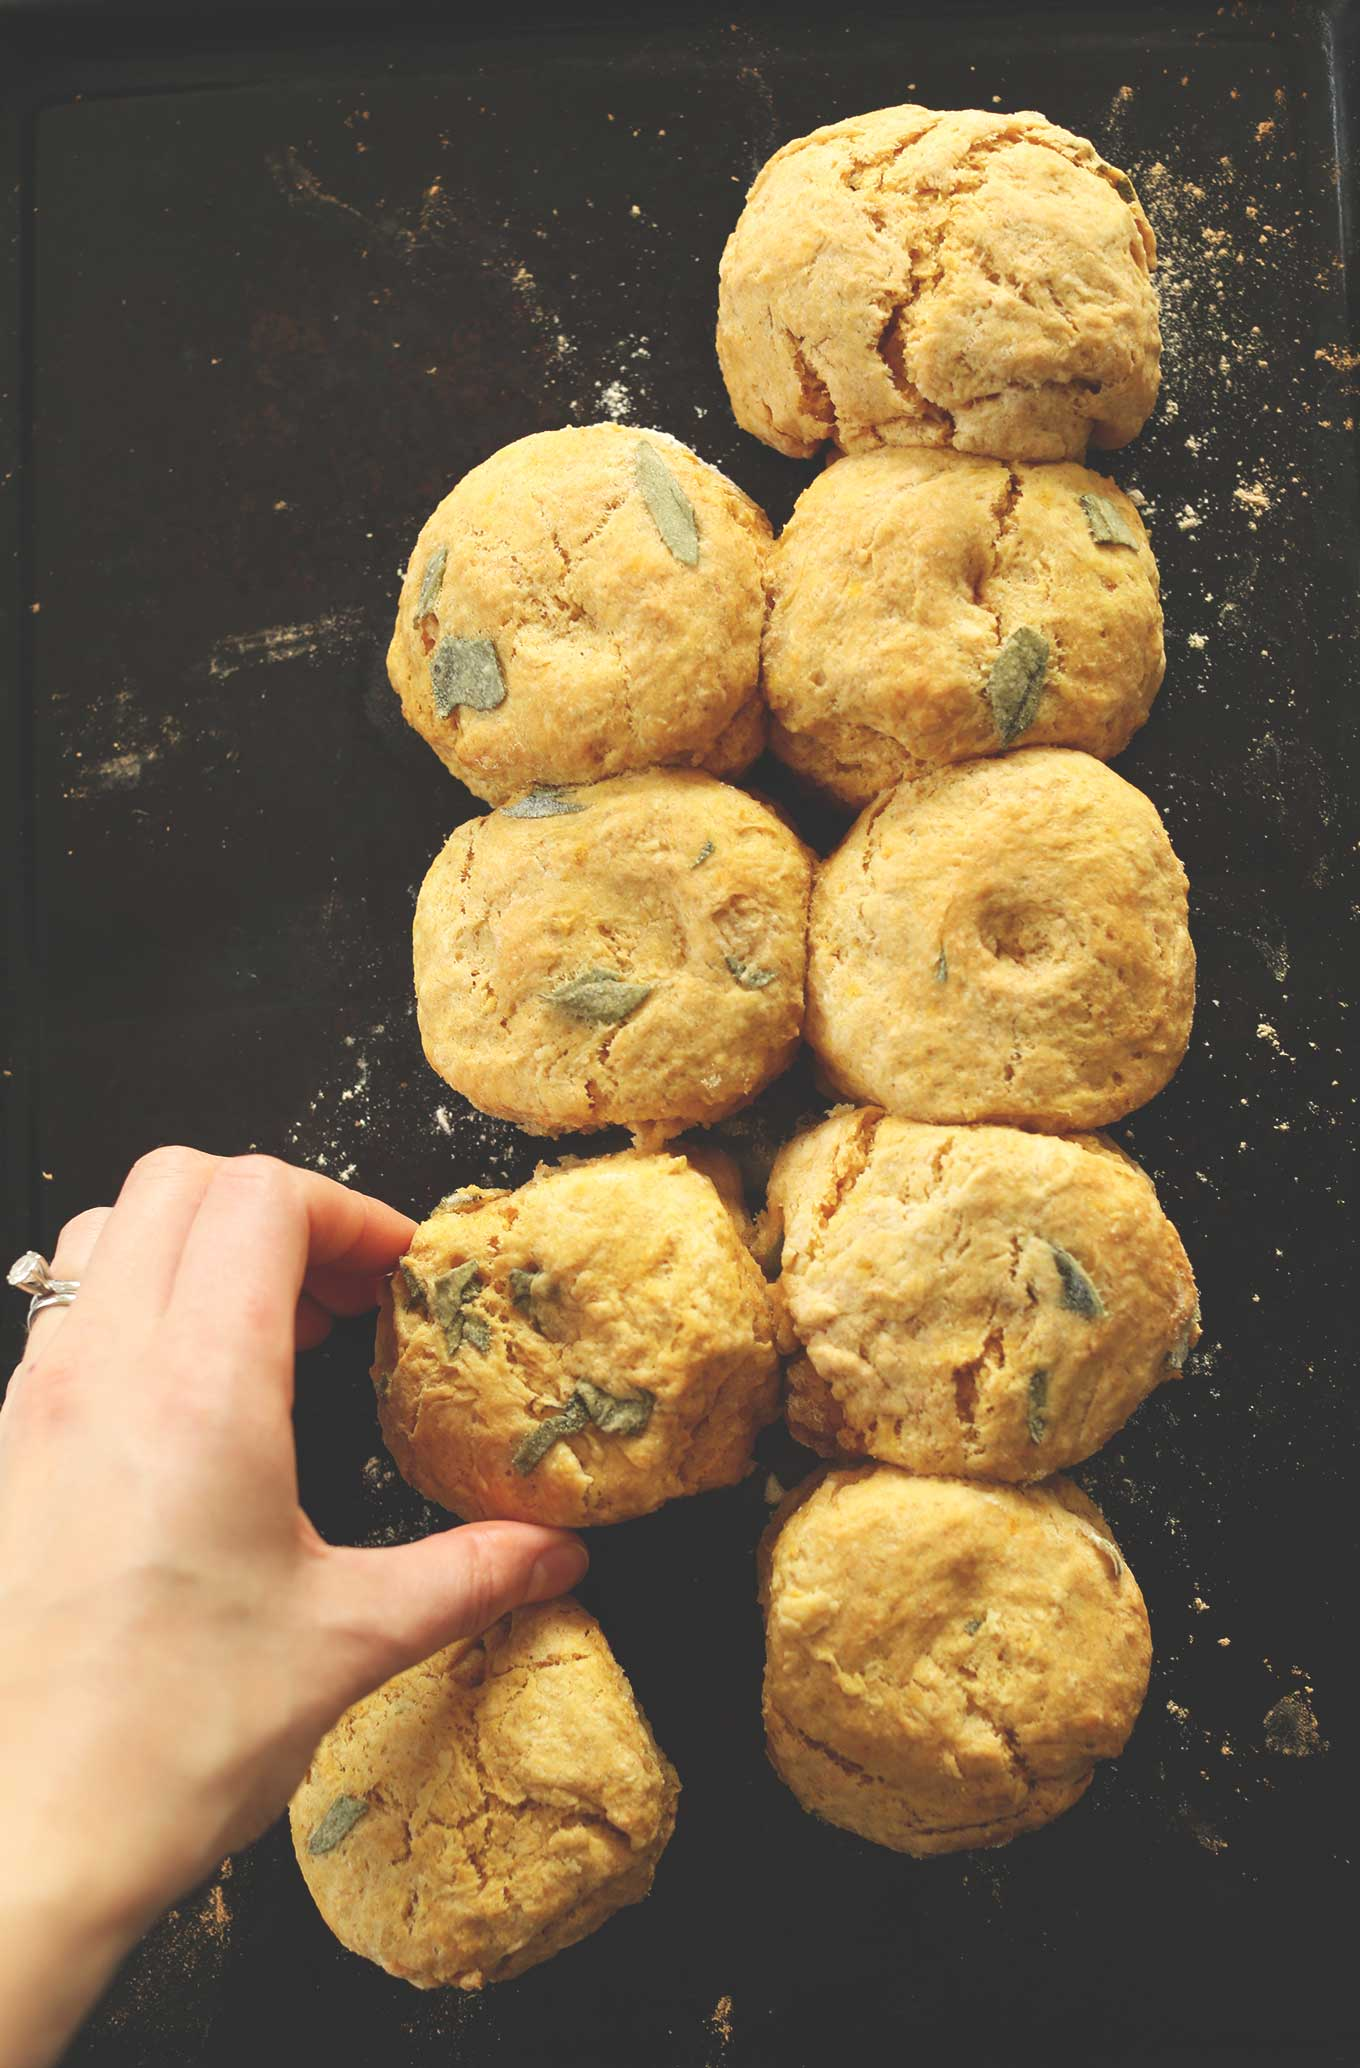 Grabbing one of our Pumpkin Sage Biscuits from the baking sheet